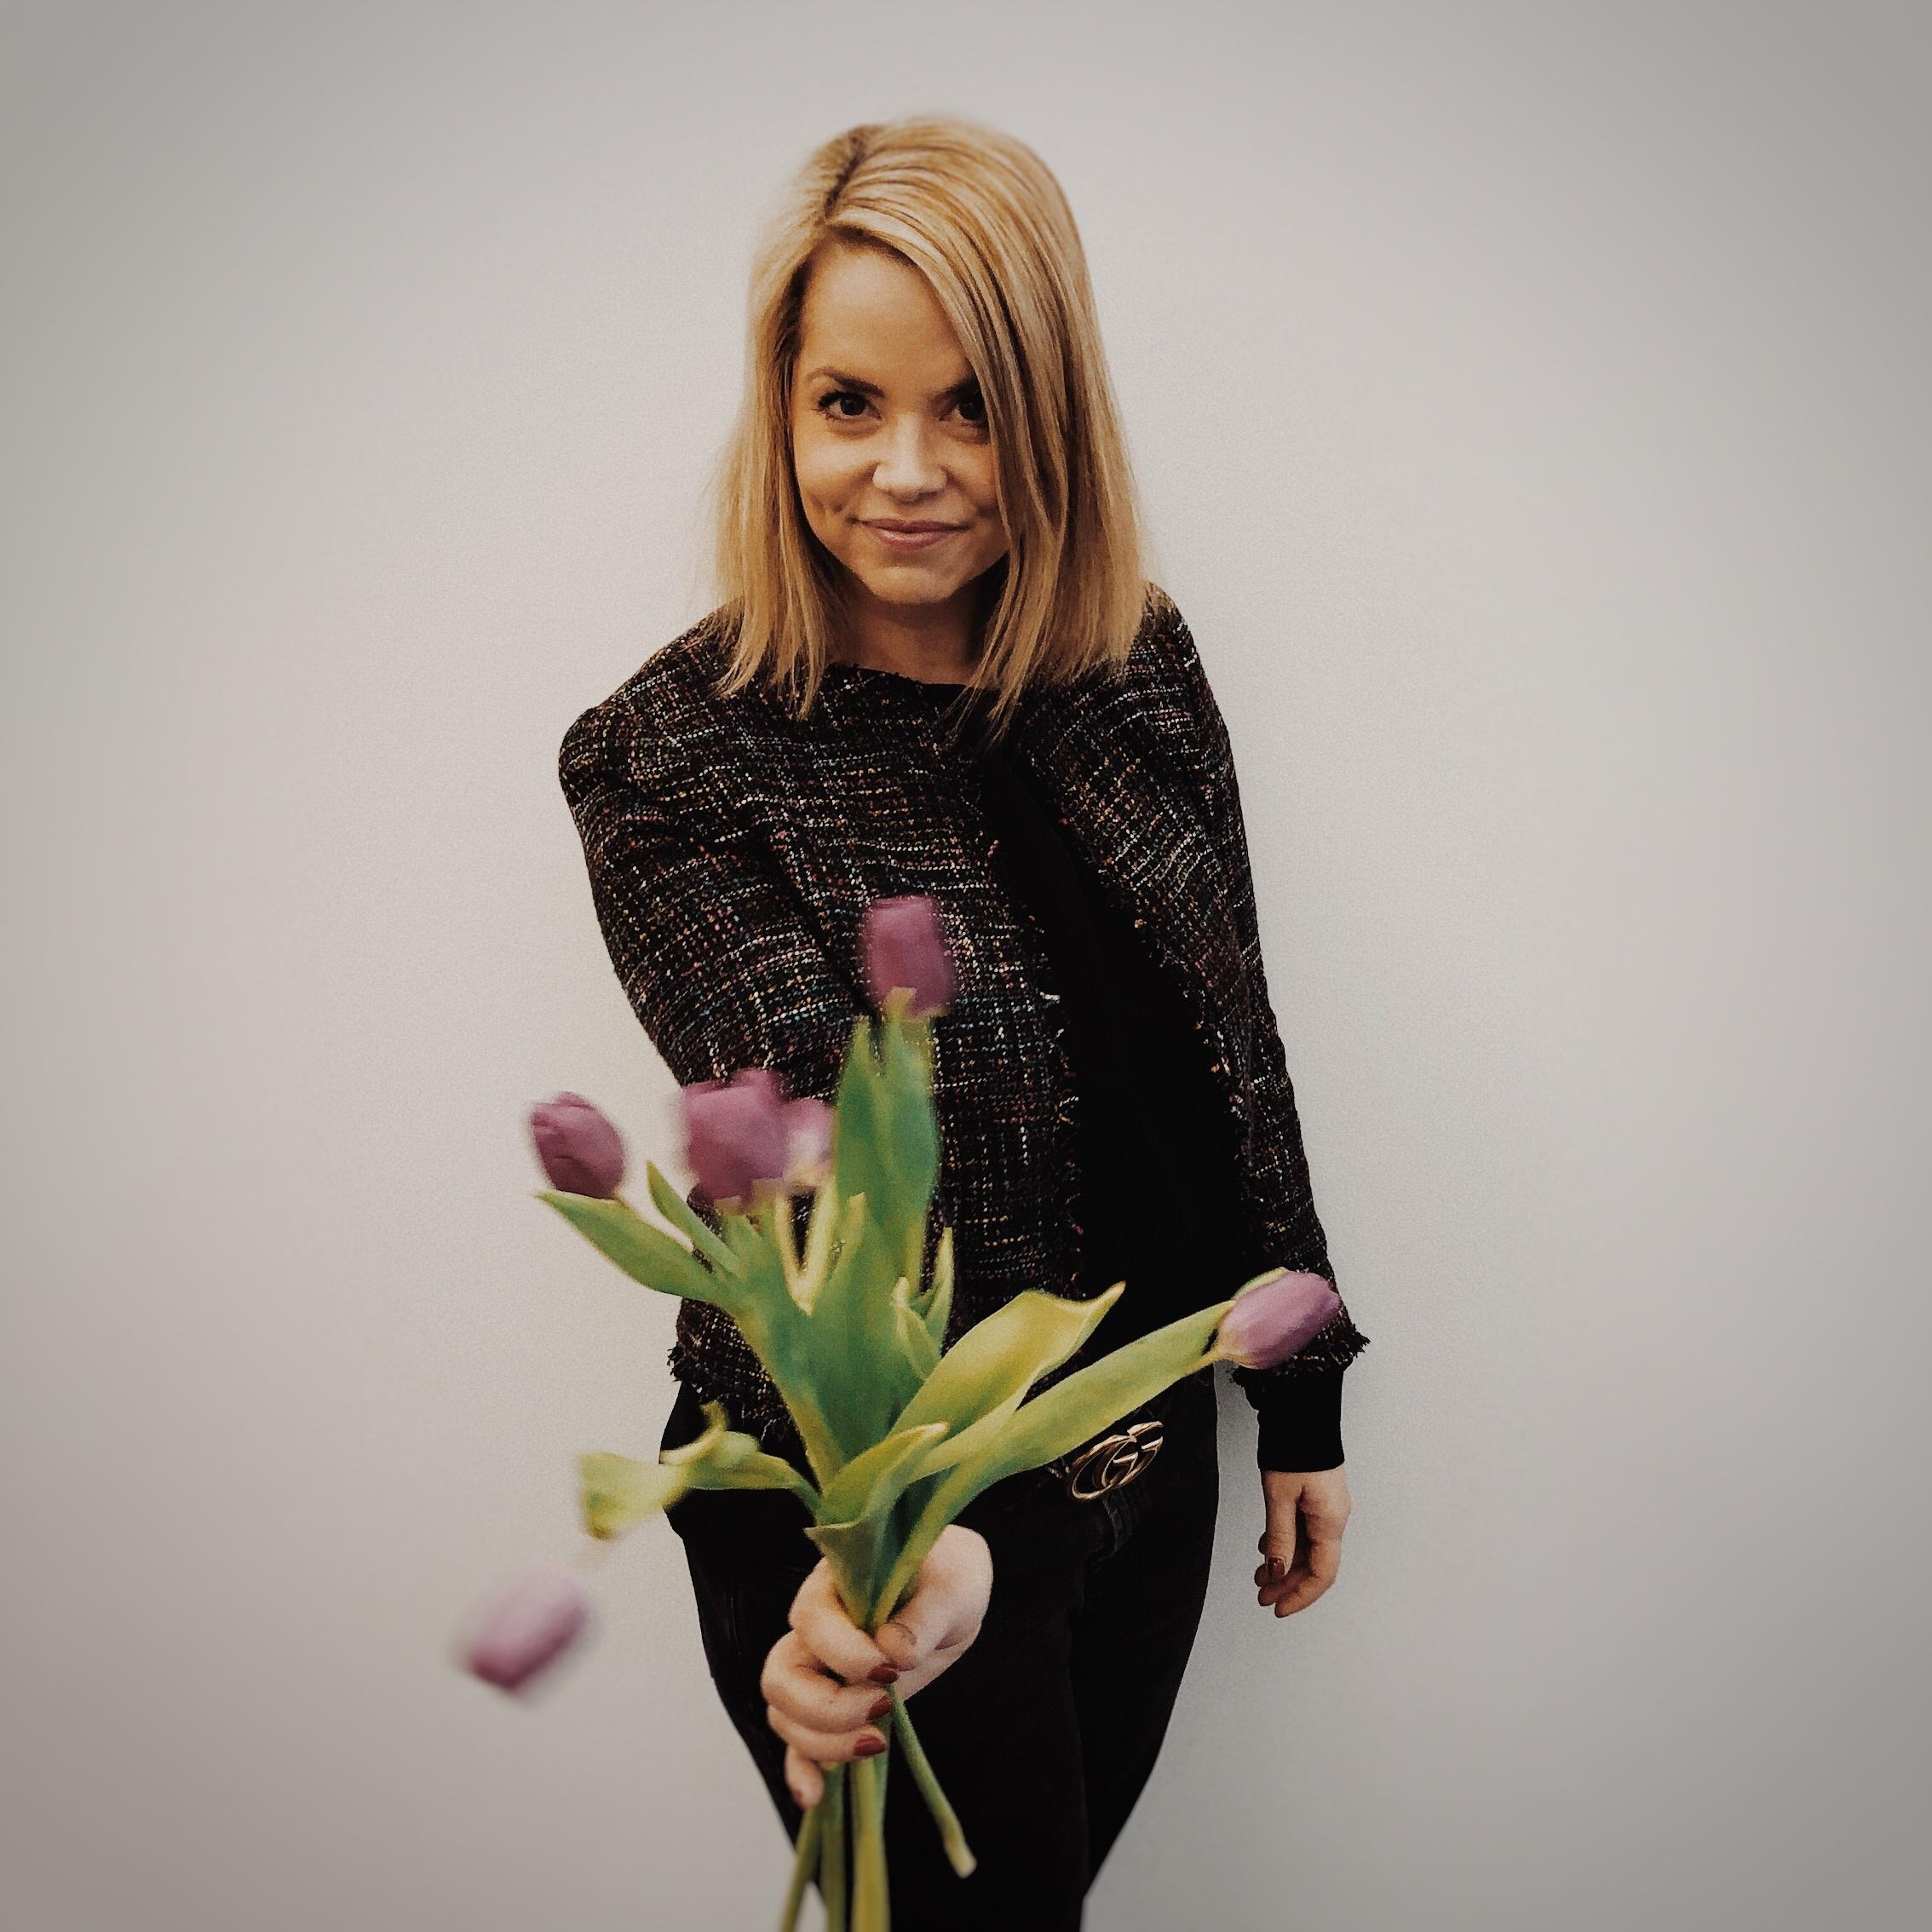 Happy Weltfrauentag. #flowers #blumen #blonde #fashincrush #justme #lifestyle